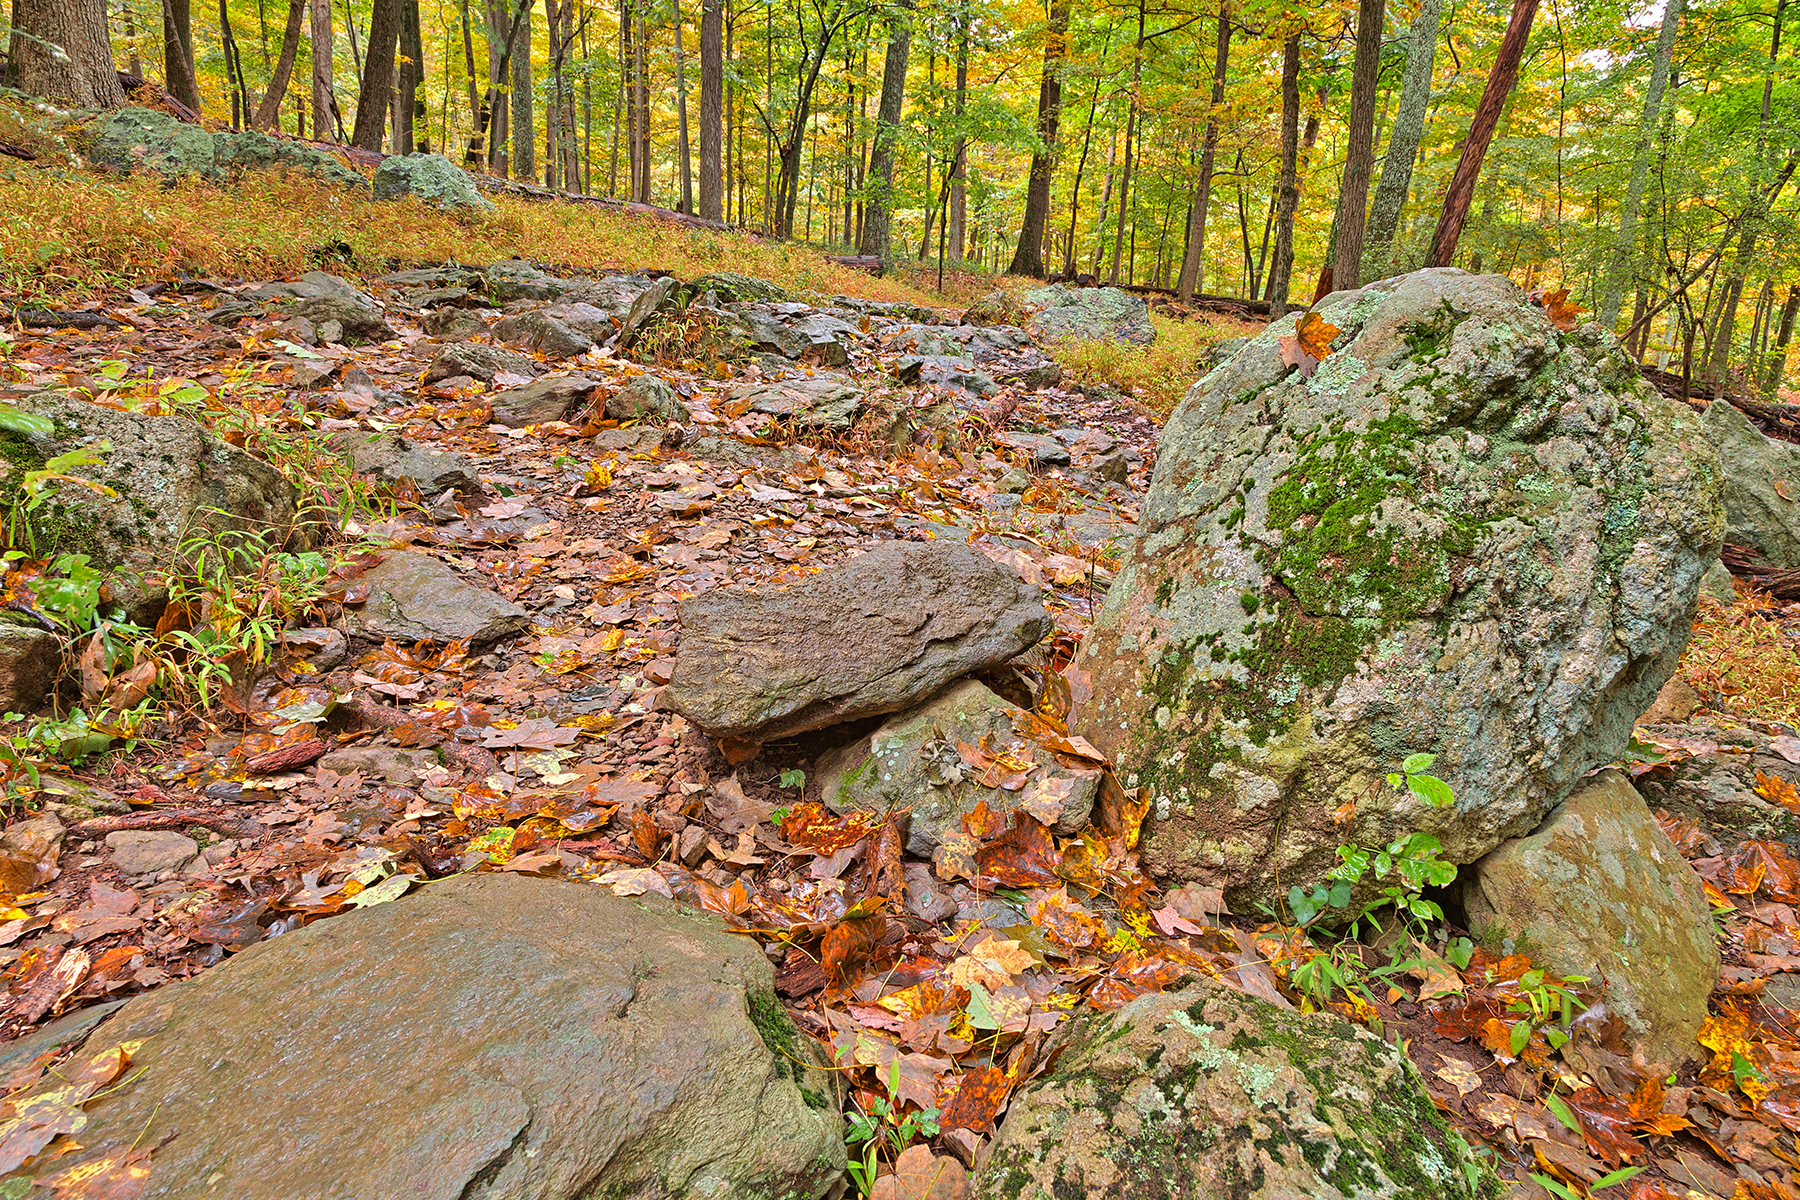 Catoctin mountain trail - hdr photo